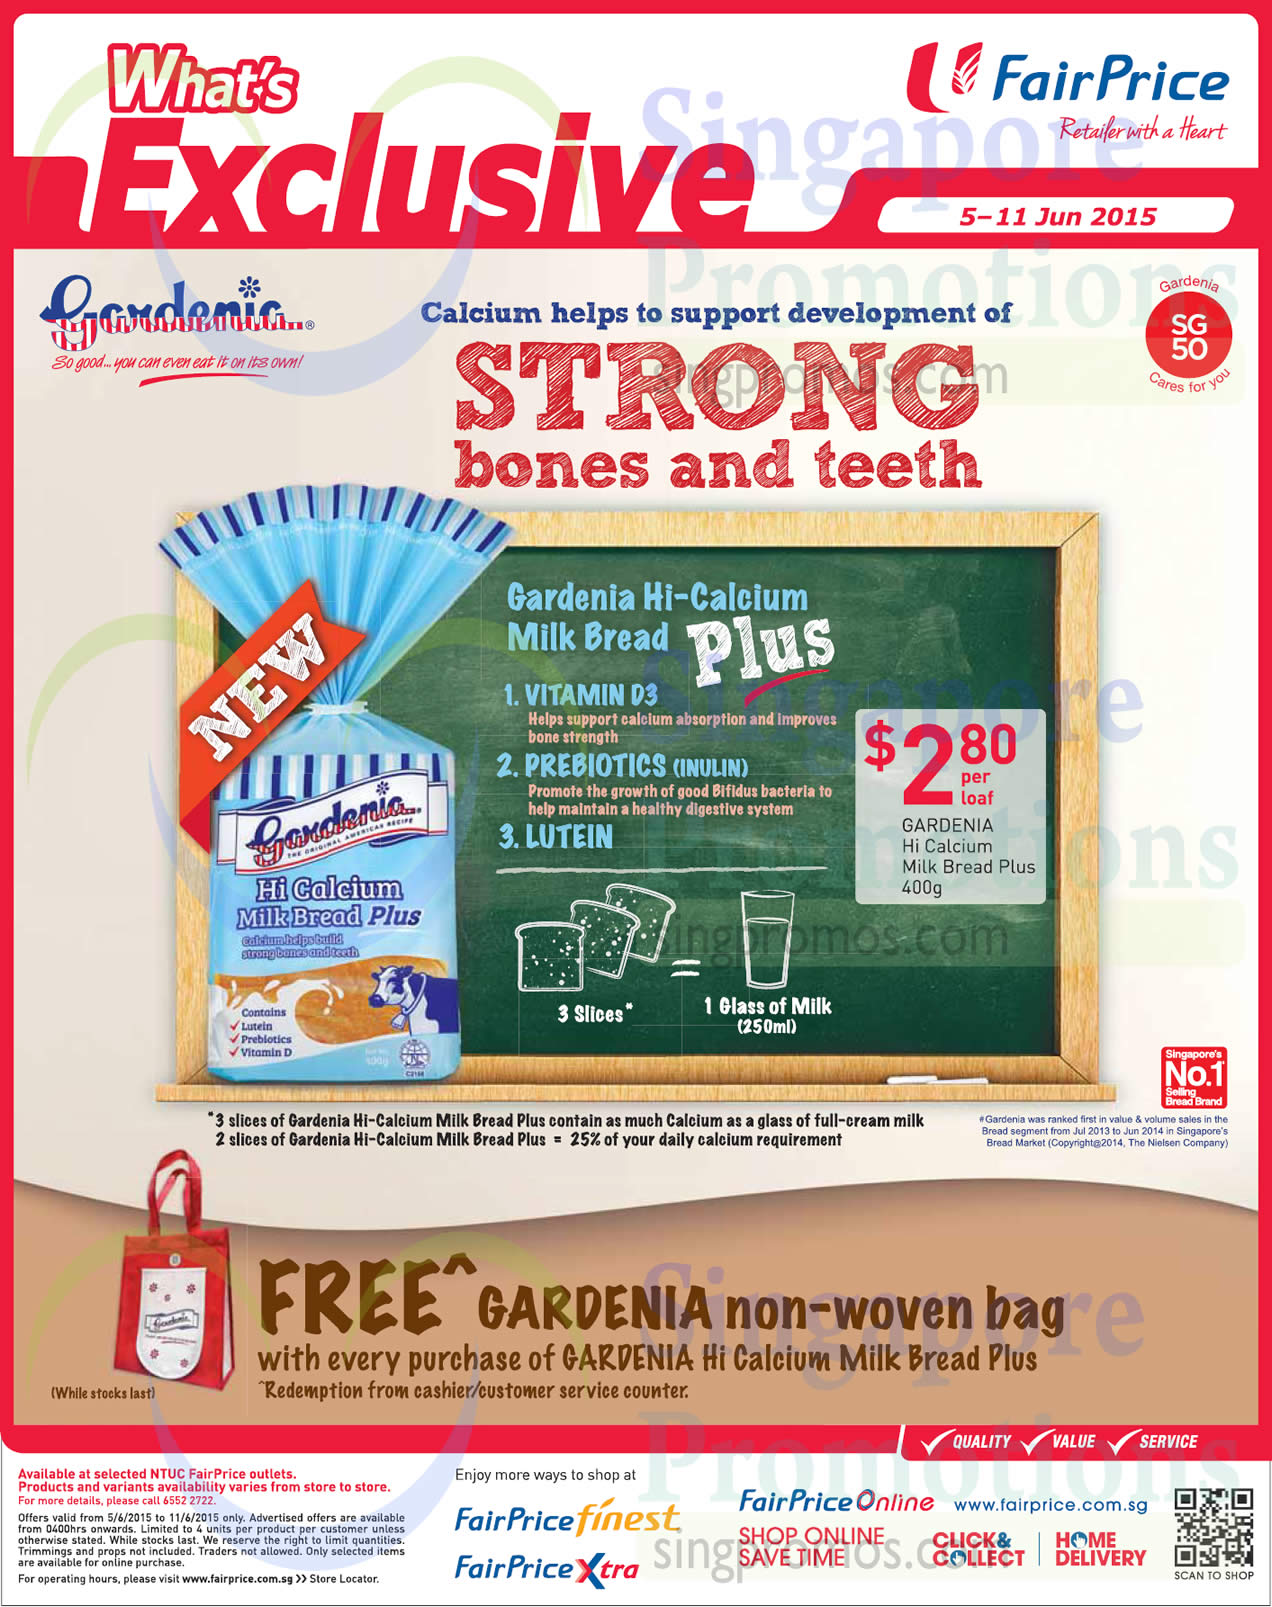 Gardenia Hi Calcium Milk Bread Plus, Free Gardenia Non Woven Bag